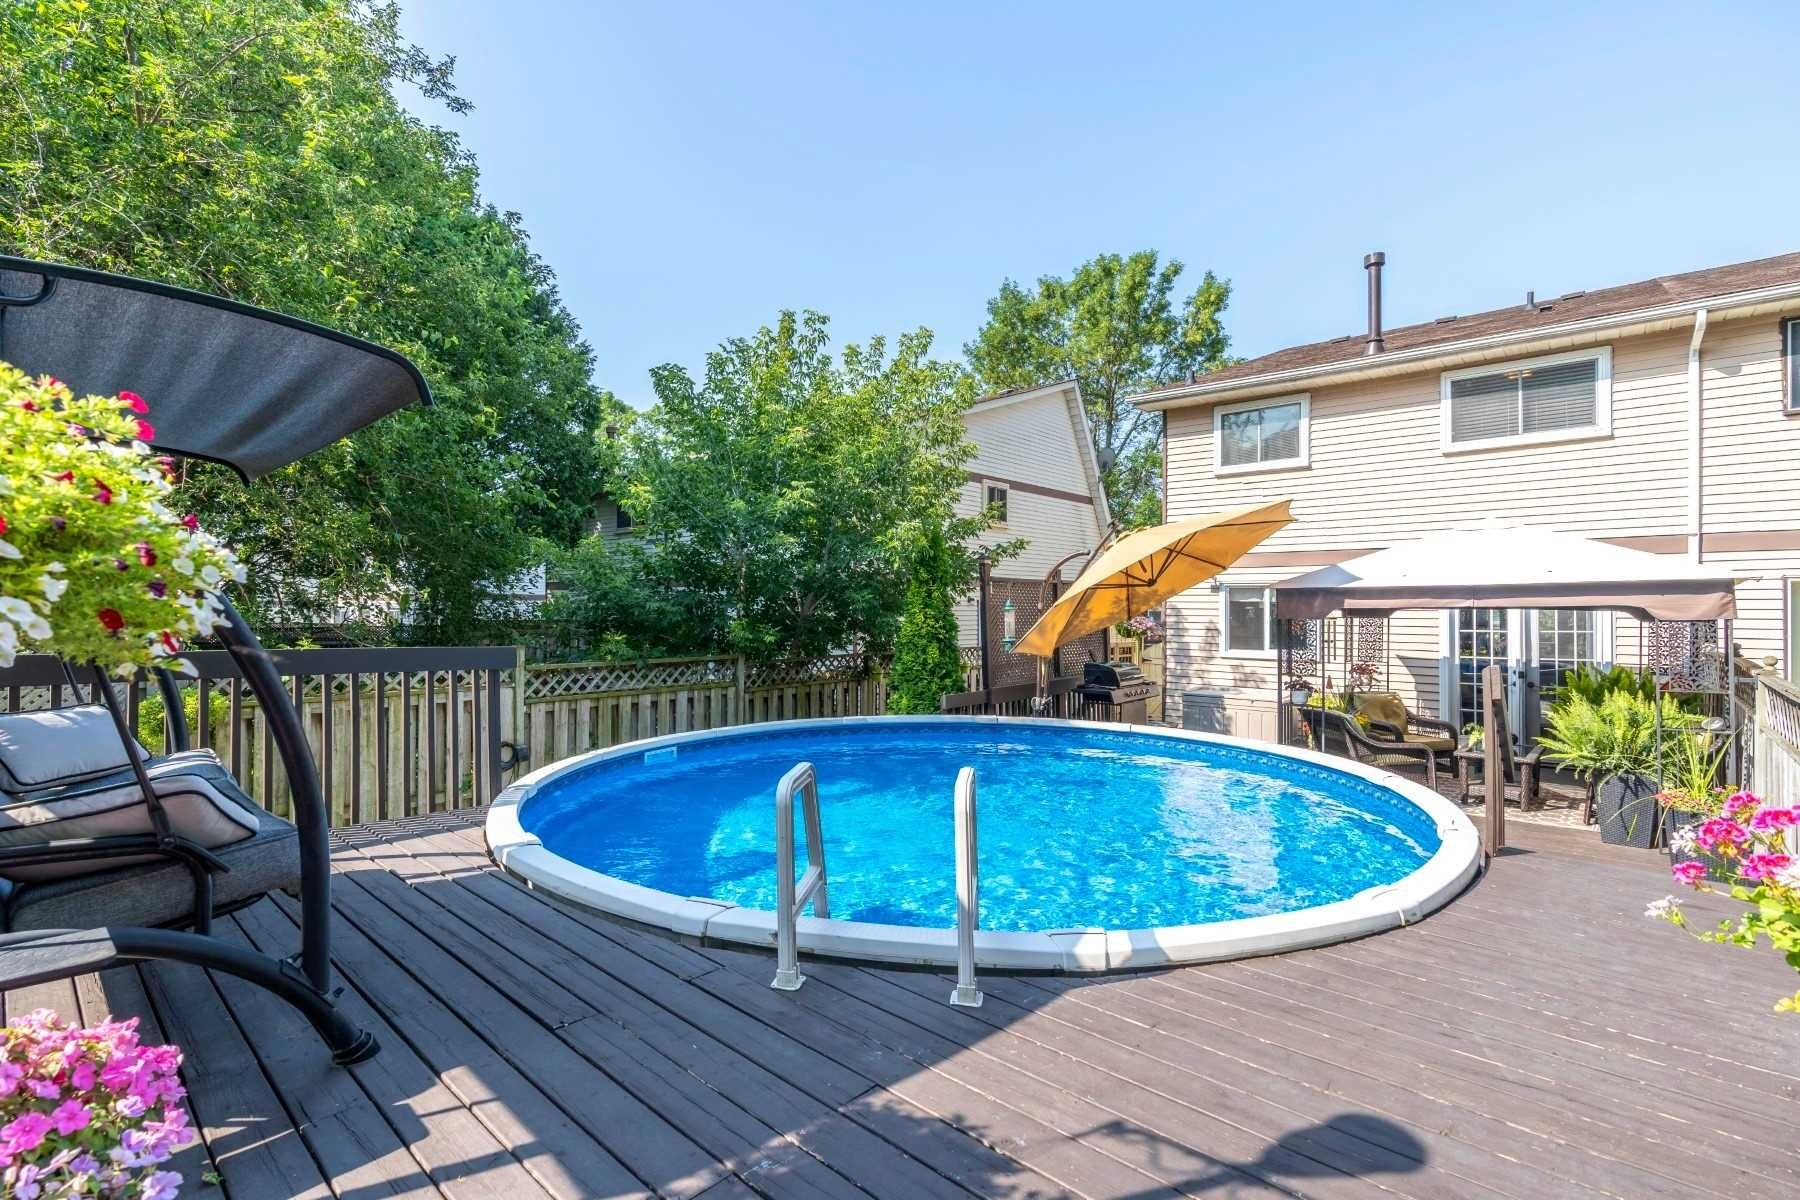 Photo 19: Photos: 547 Camelot Drive in Oshawa: Eastdale House (2-Storey) for sale : MLS®# E4529227